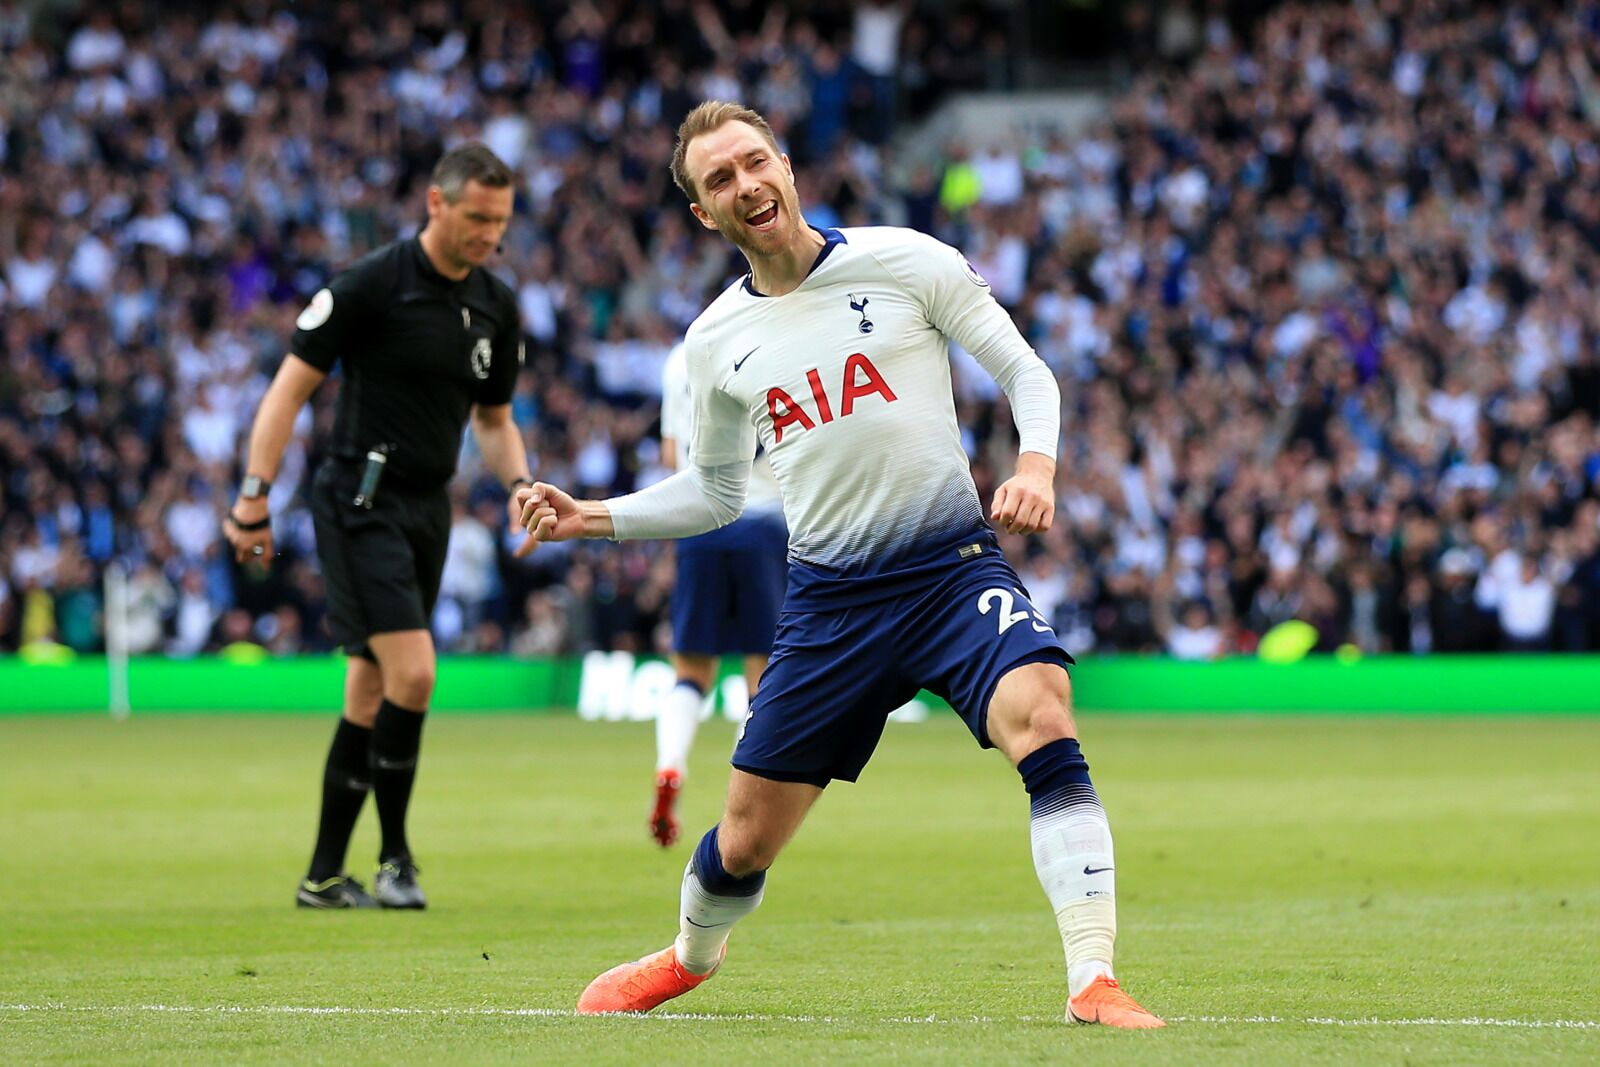 A swap deal for Dybala and Eriksen with Juventus could suit Tottenham